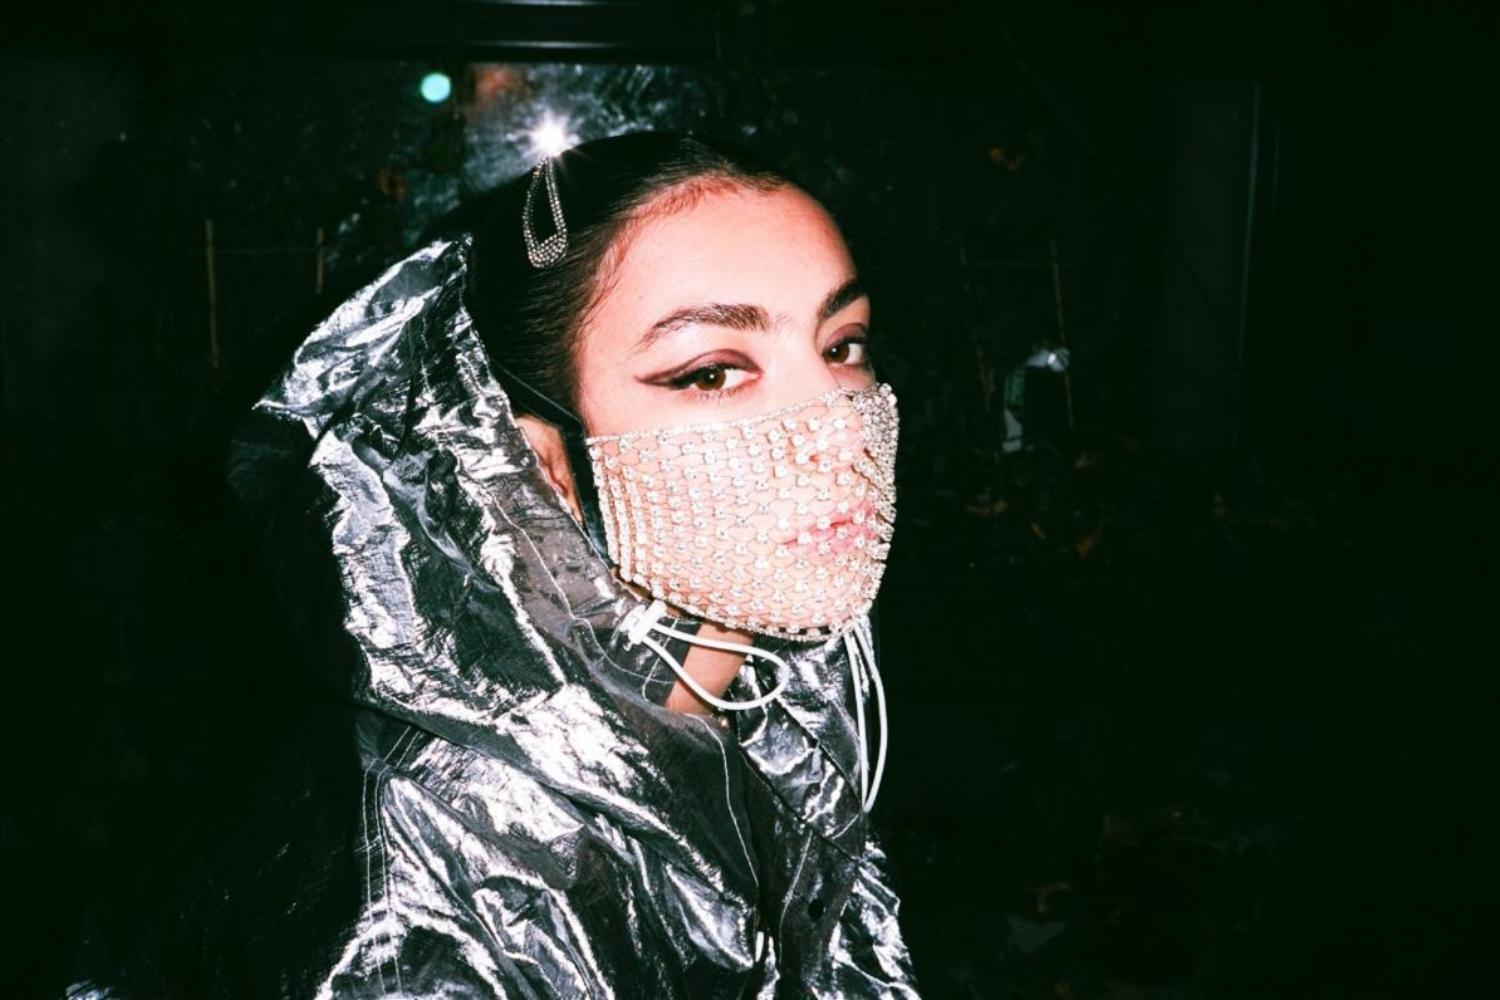 Charli XCX announces second week of Instagram livestreams, featuring Rina Sawayama, Orville Peck and more